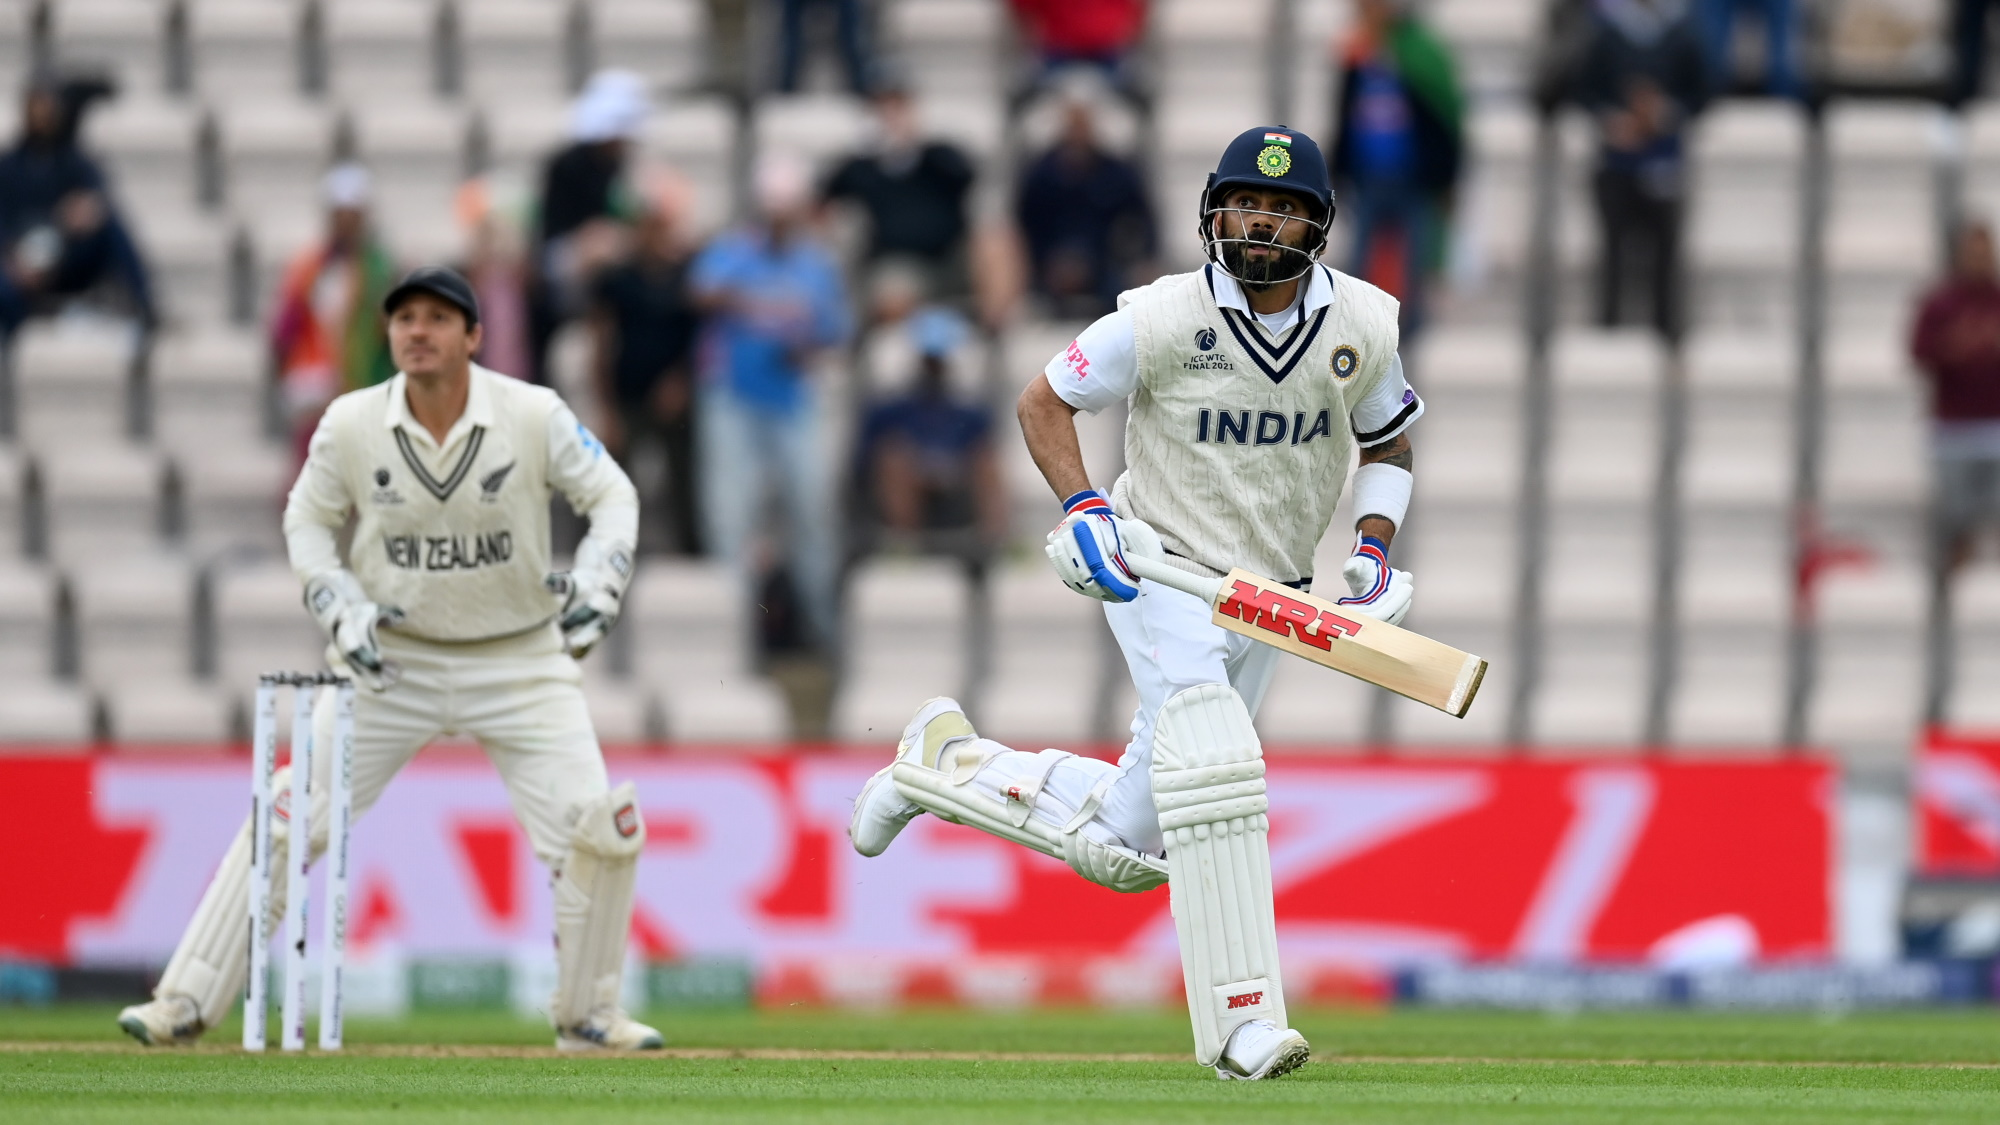 India vs New Zealand live stream: how to watch World Test Championship Final free and from anywhere | TechRadar